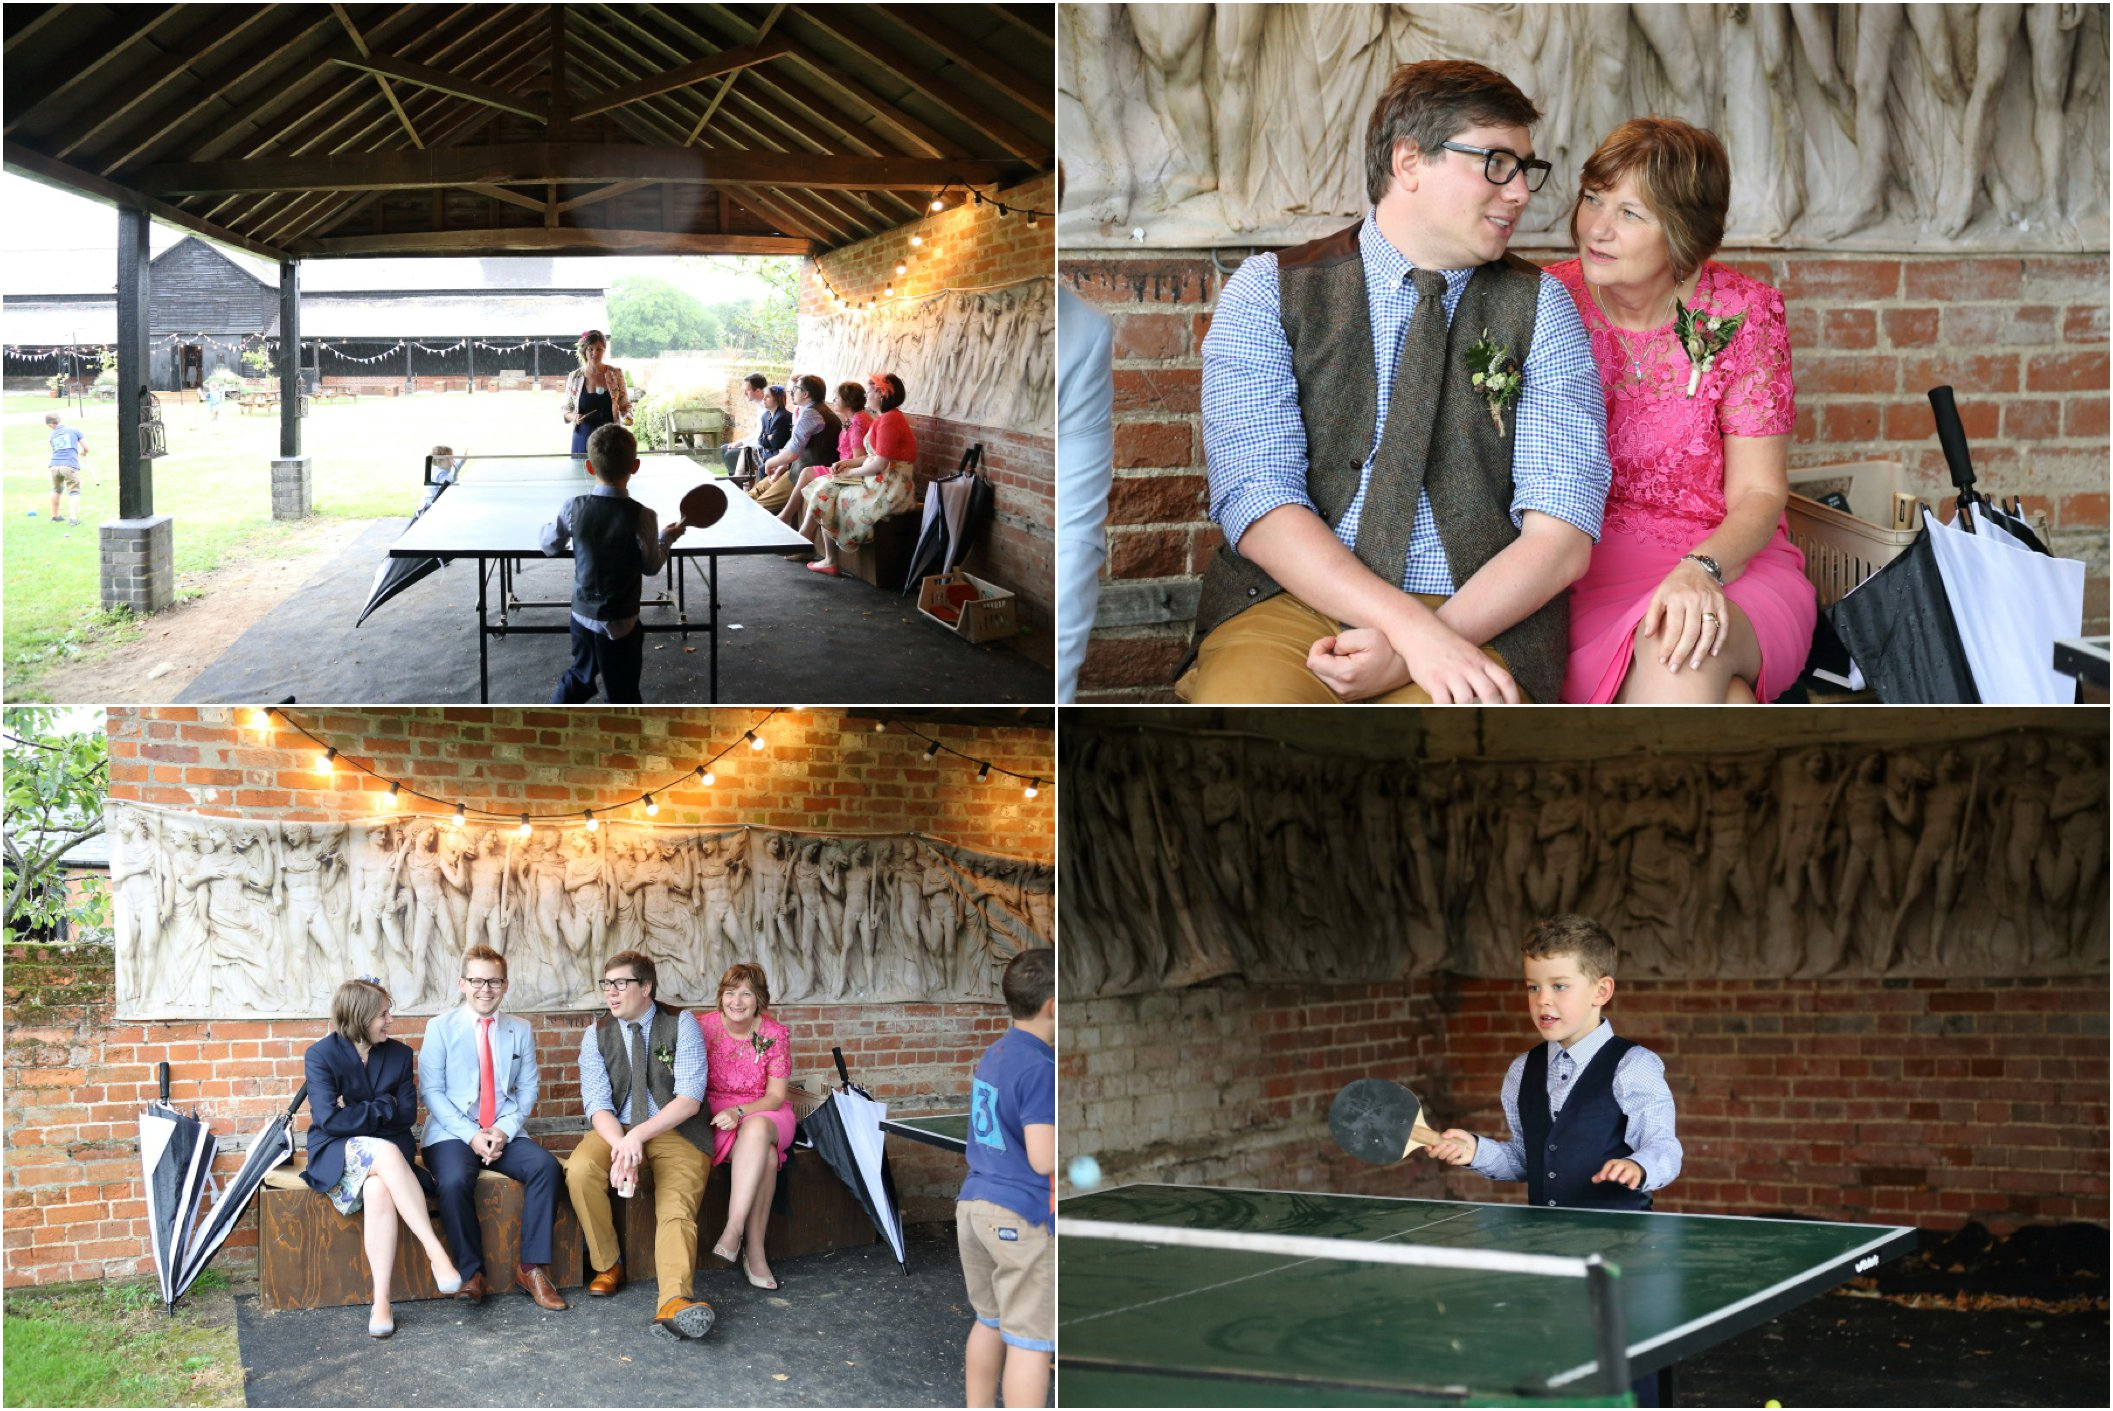 escaping the rain unter the shelter at Childerley Cambridge wedding